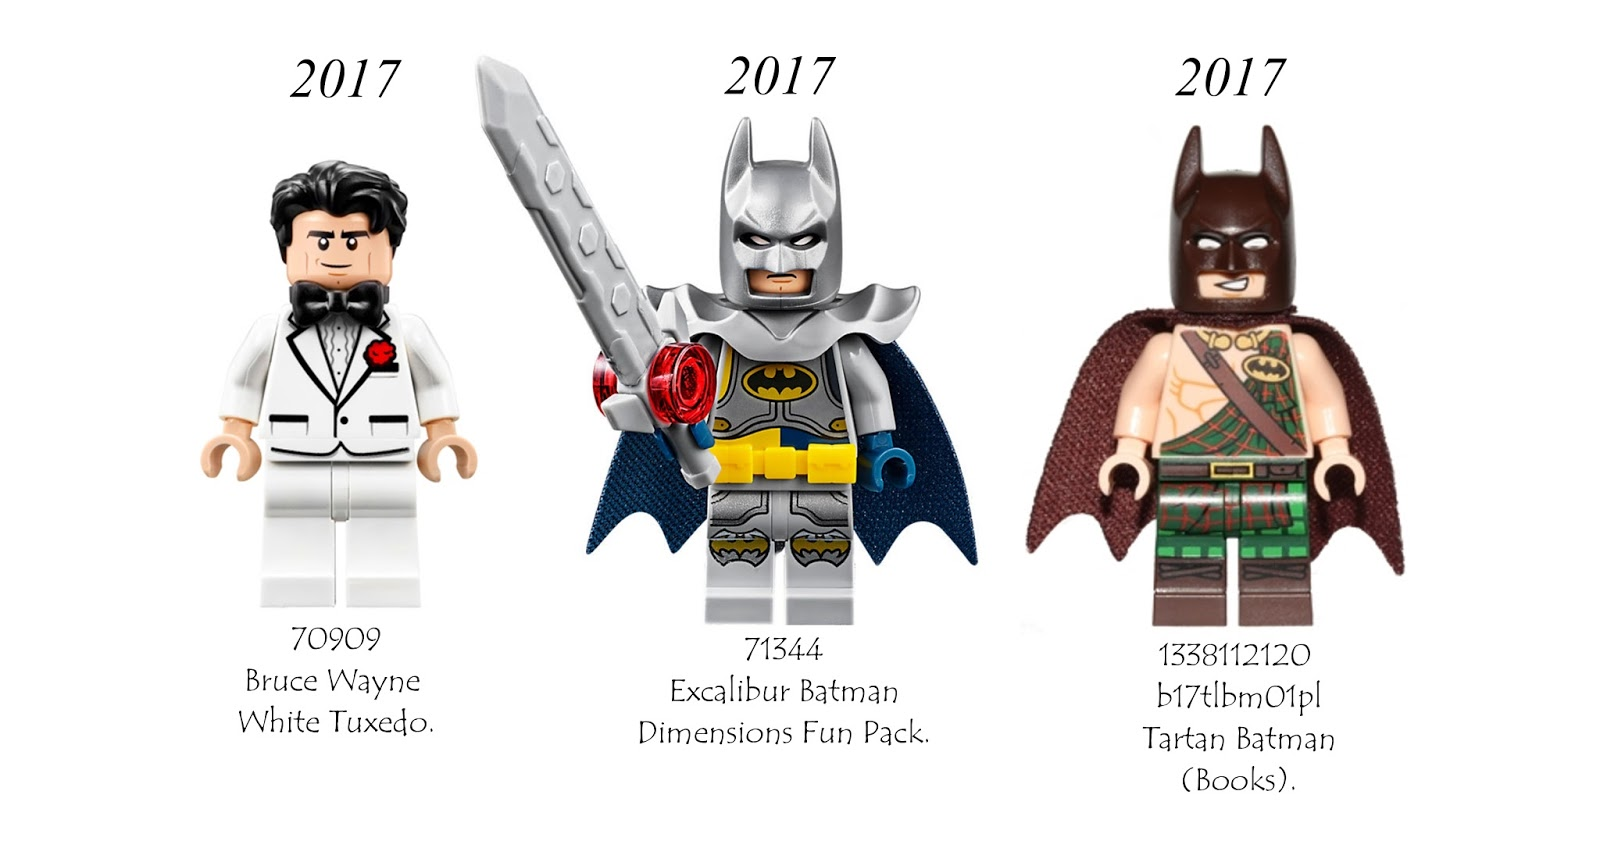 Compilation Official Lego Batman Reviews 70909 The Movie Batcave Break In 71344 Fun Pack Excalibur And Bionic Steed 1338112120 Chaos Gotham City